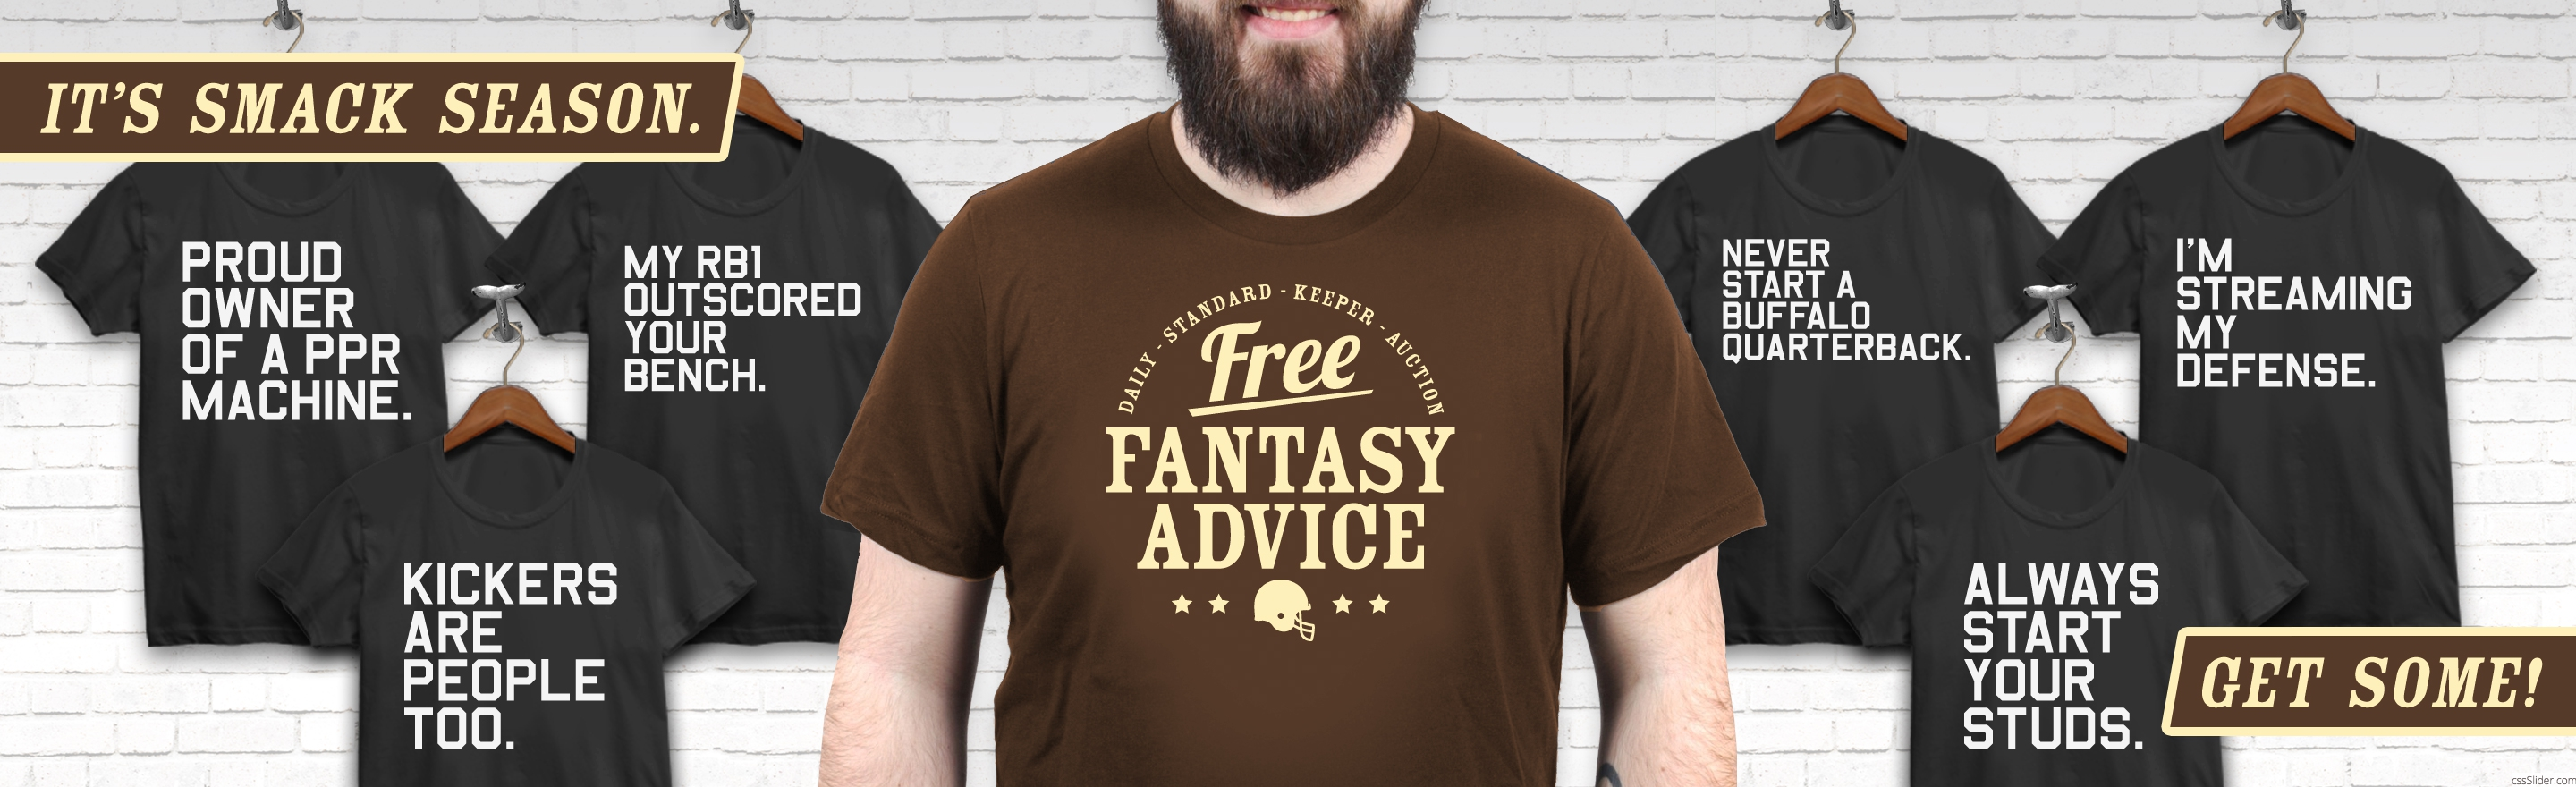 Fantasy Sports Apparel, designed by Matthew Lee Rosen.